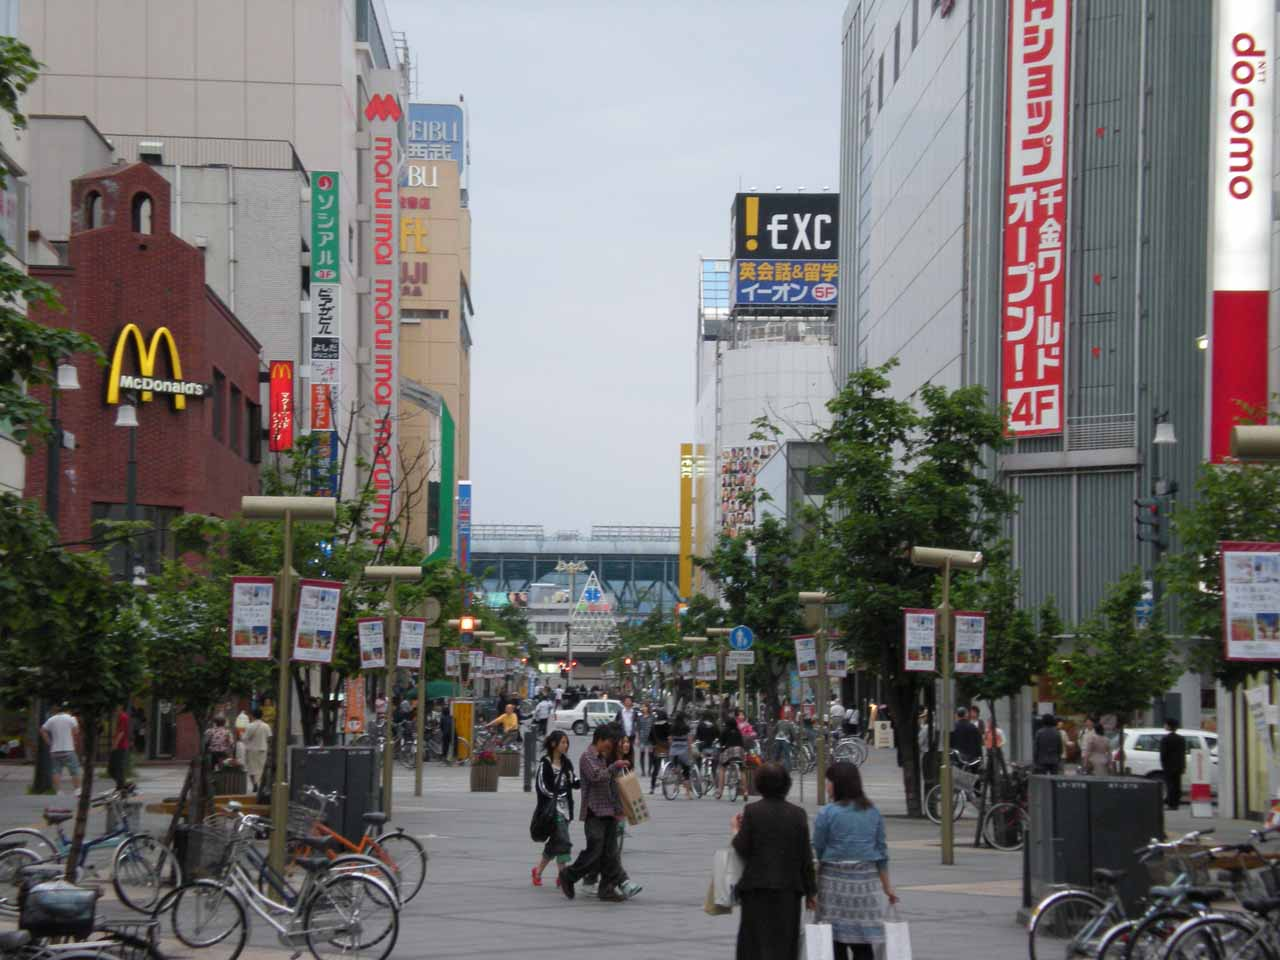 We based ourselves for our first couple of nights in Hokkaido in Asahikawa. The busy scene at the pedestrian street in the city's downtown made our stay enjoyable